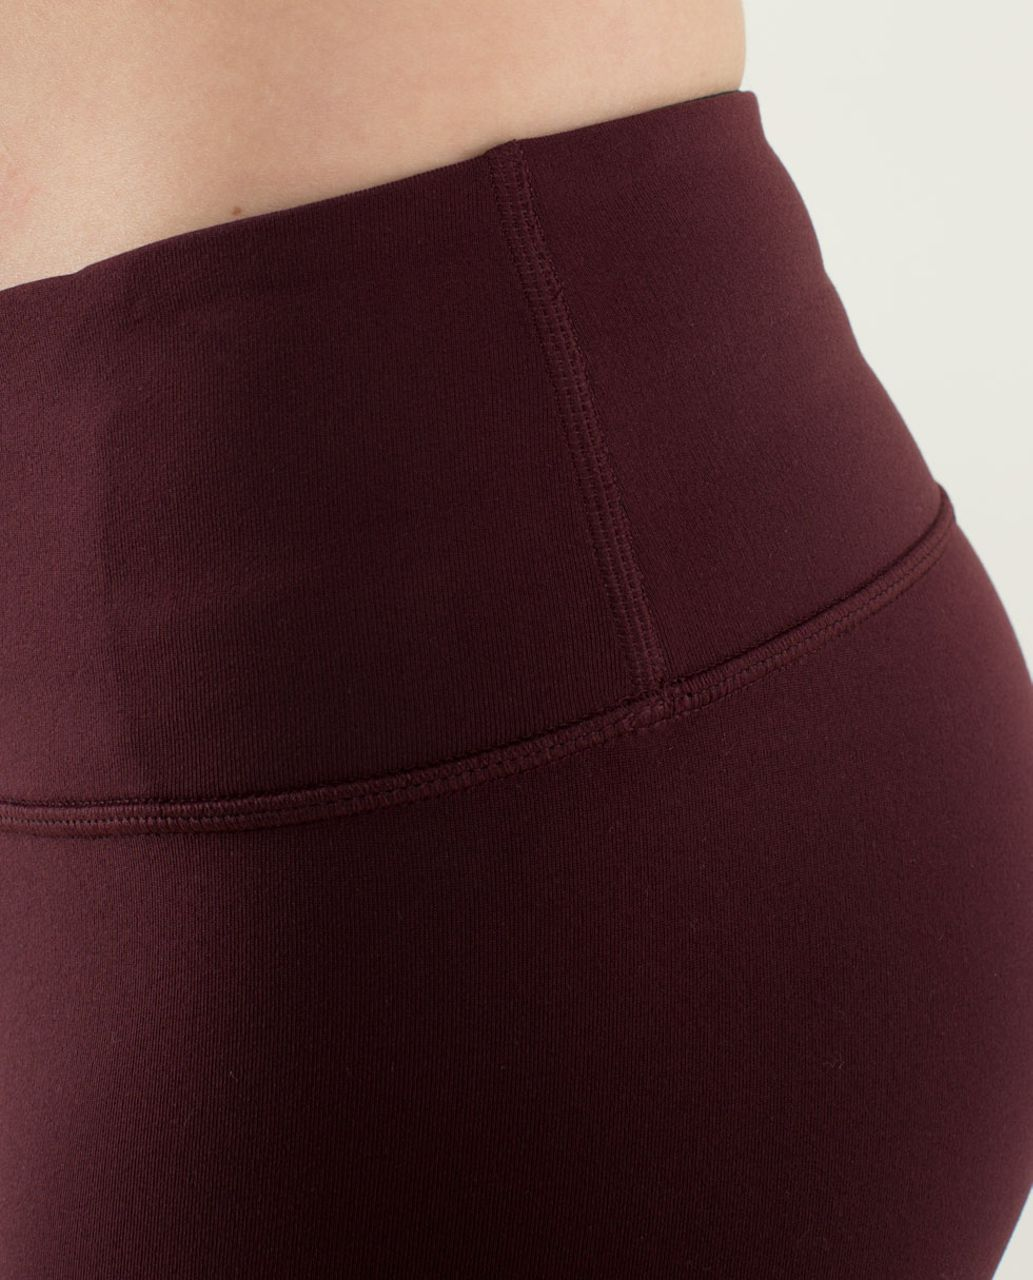 Lululemon Wunder Under Pant *Reversible - Bordeaux Drama / Black